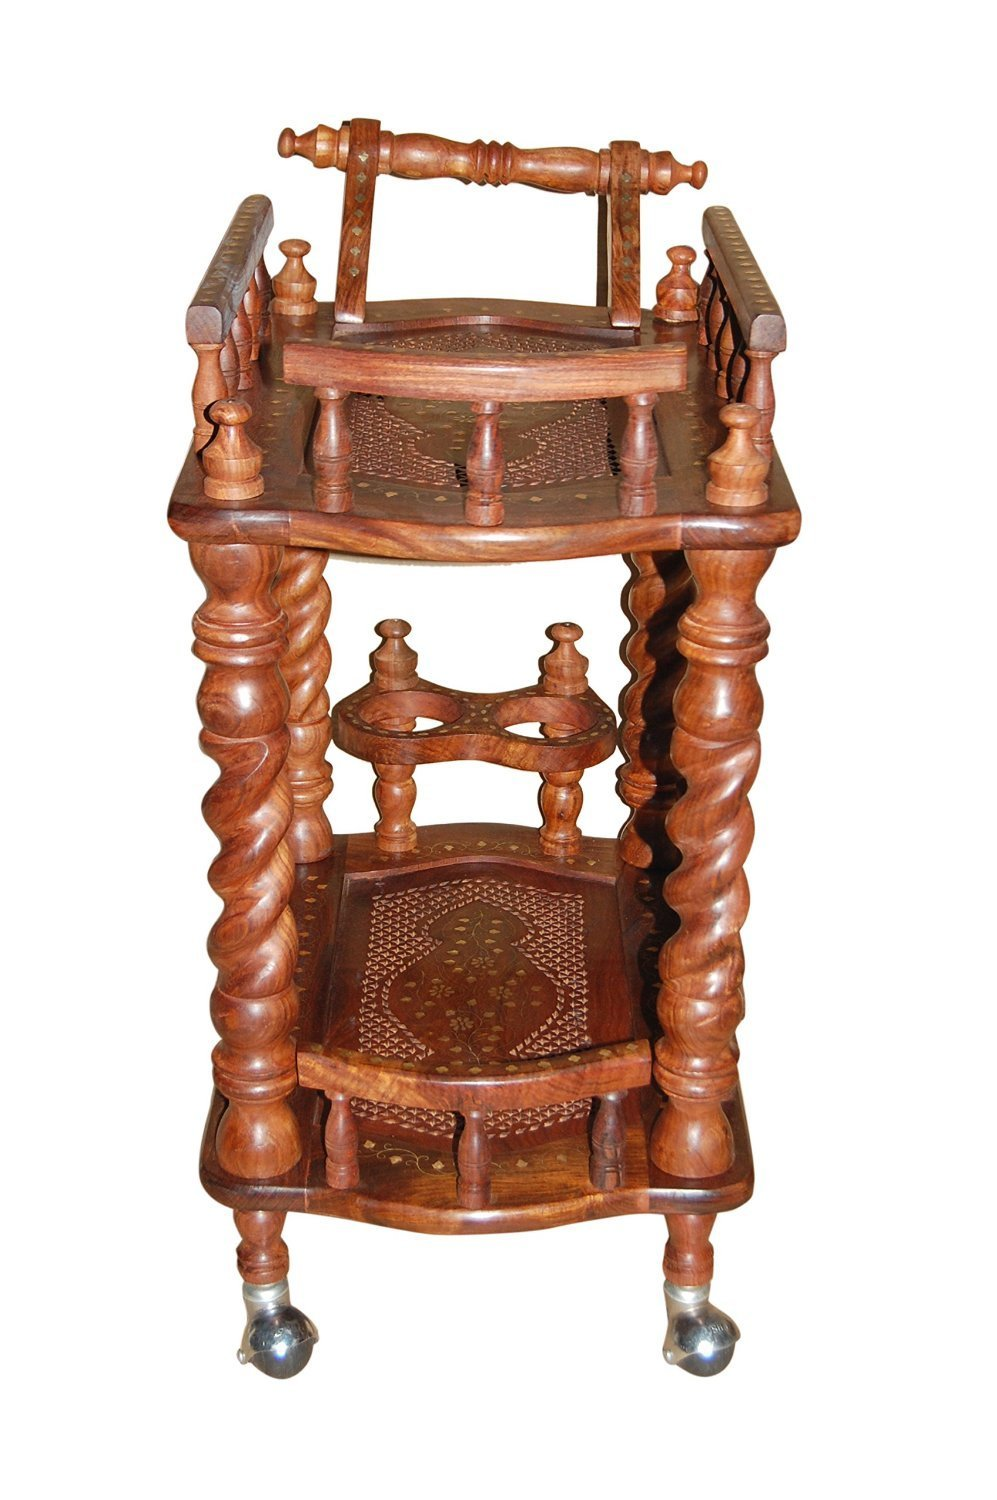 Solminf wooden carved service trolley/bar trolley/kitchen trolley